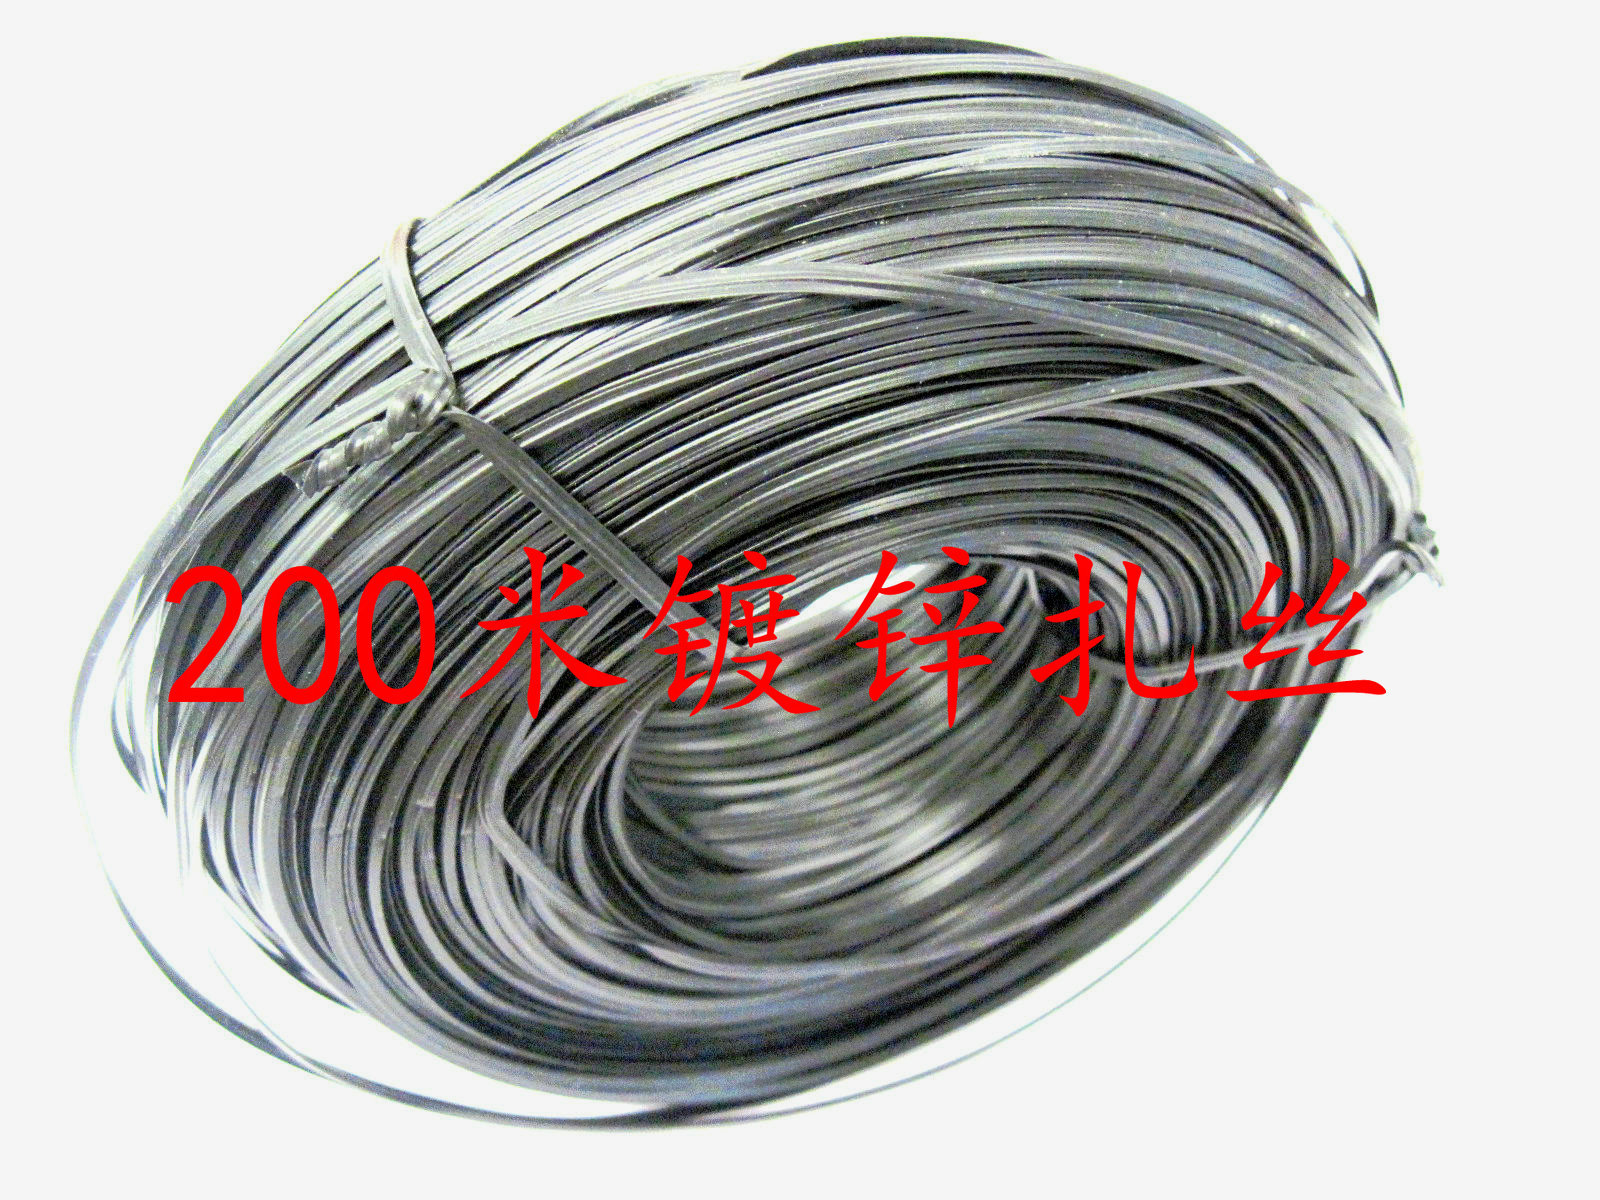 0.8 galvanized wire core plastic coated tie ligation power cable iron Sizha with 200 m roll(China (Mainland))